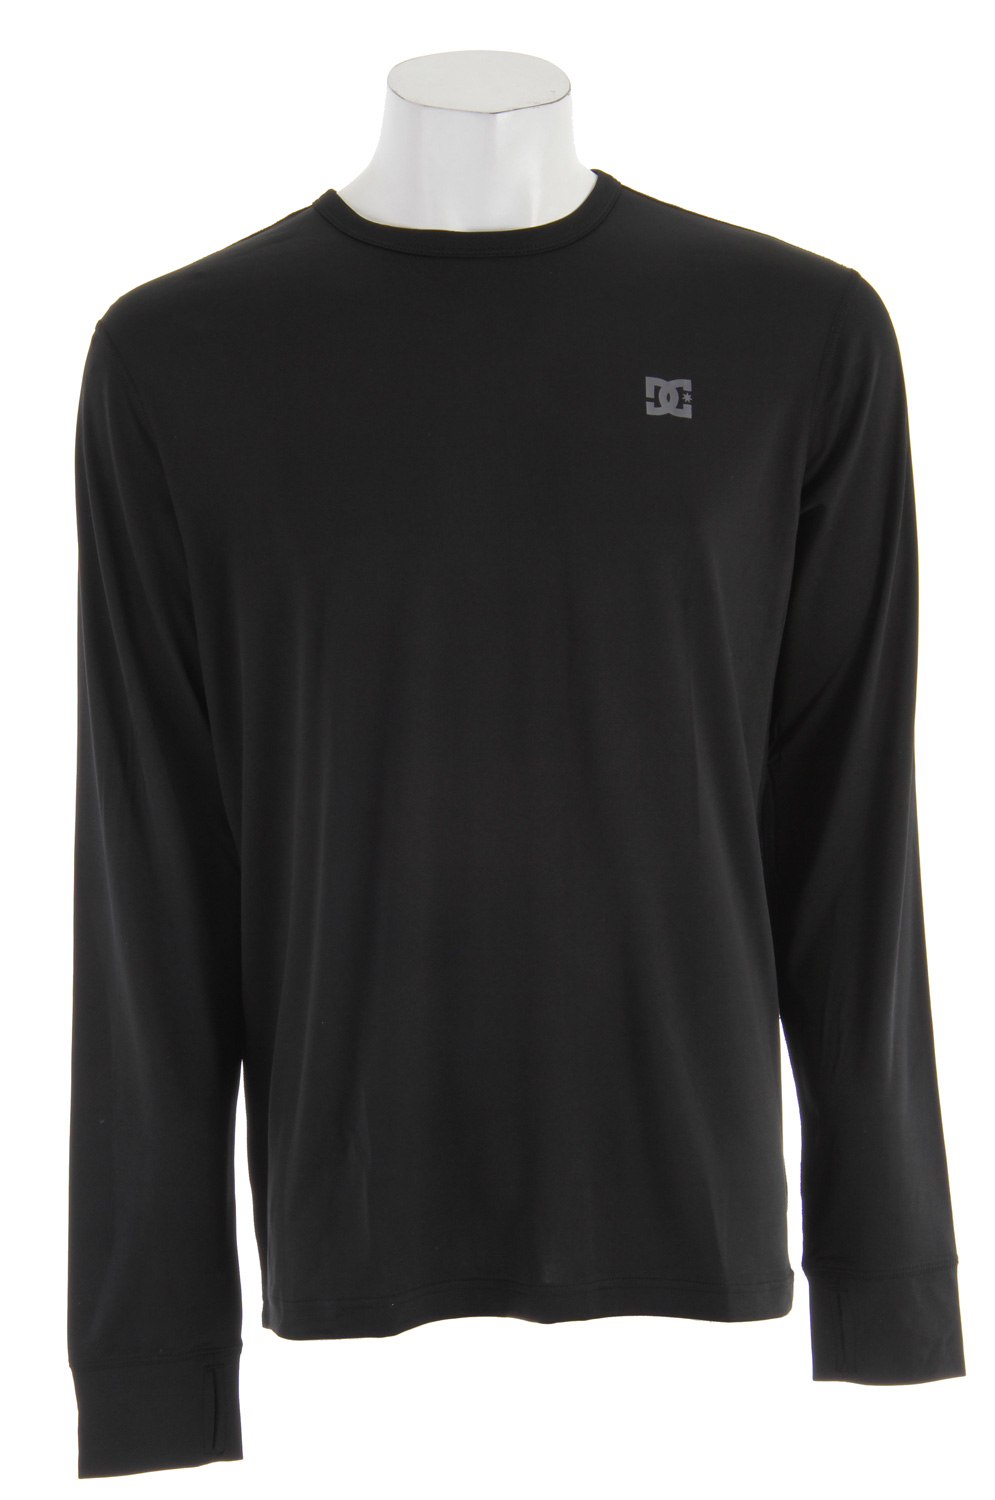 Core fit long sleeve crew neck insulating shirt with wicking proprieties, thumb hole and cuff and logo screenprint at chest. 95% polyester / 5 % spandex. - $29.95